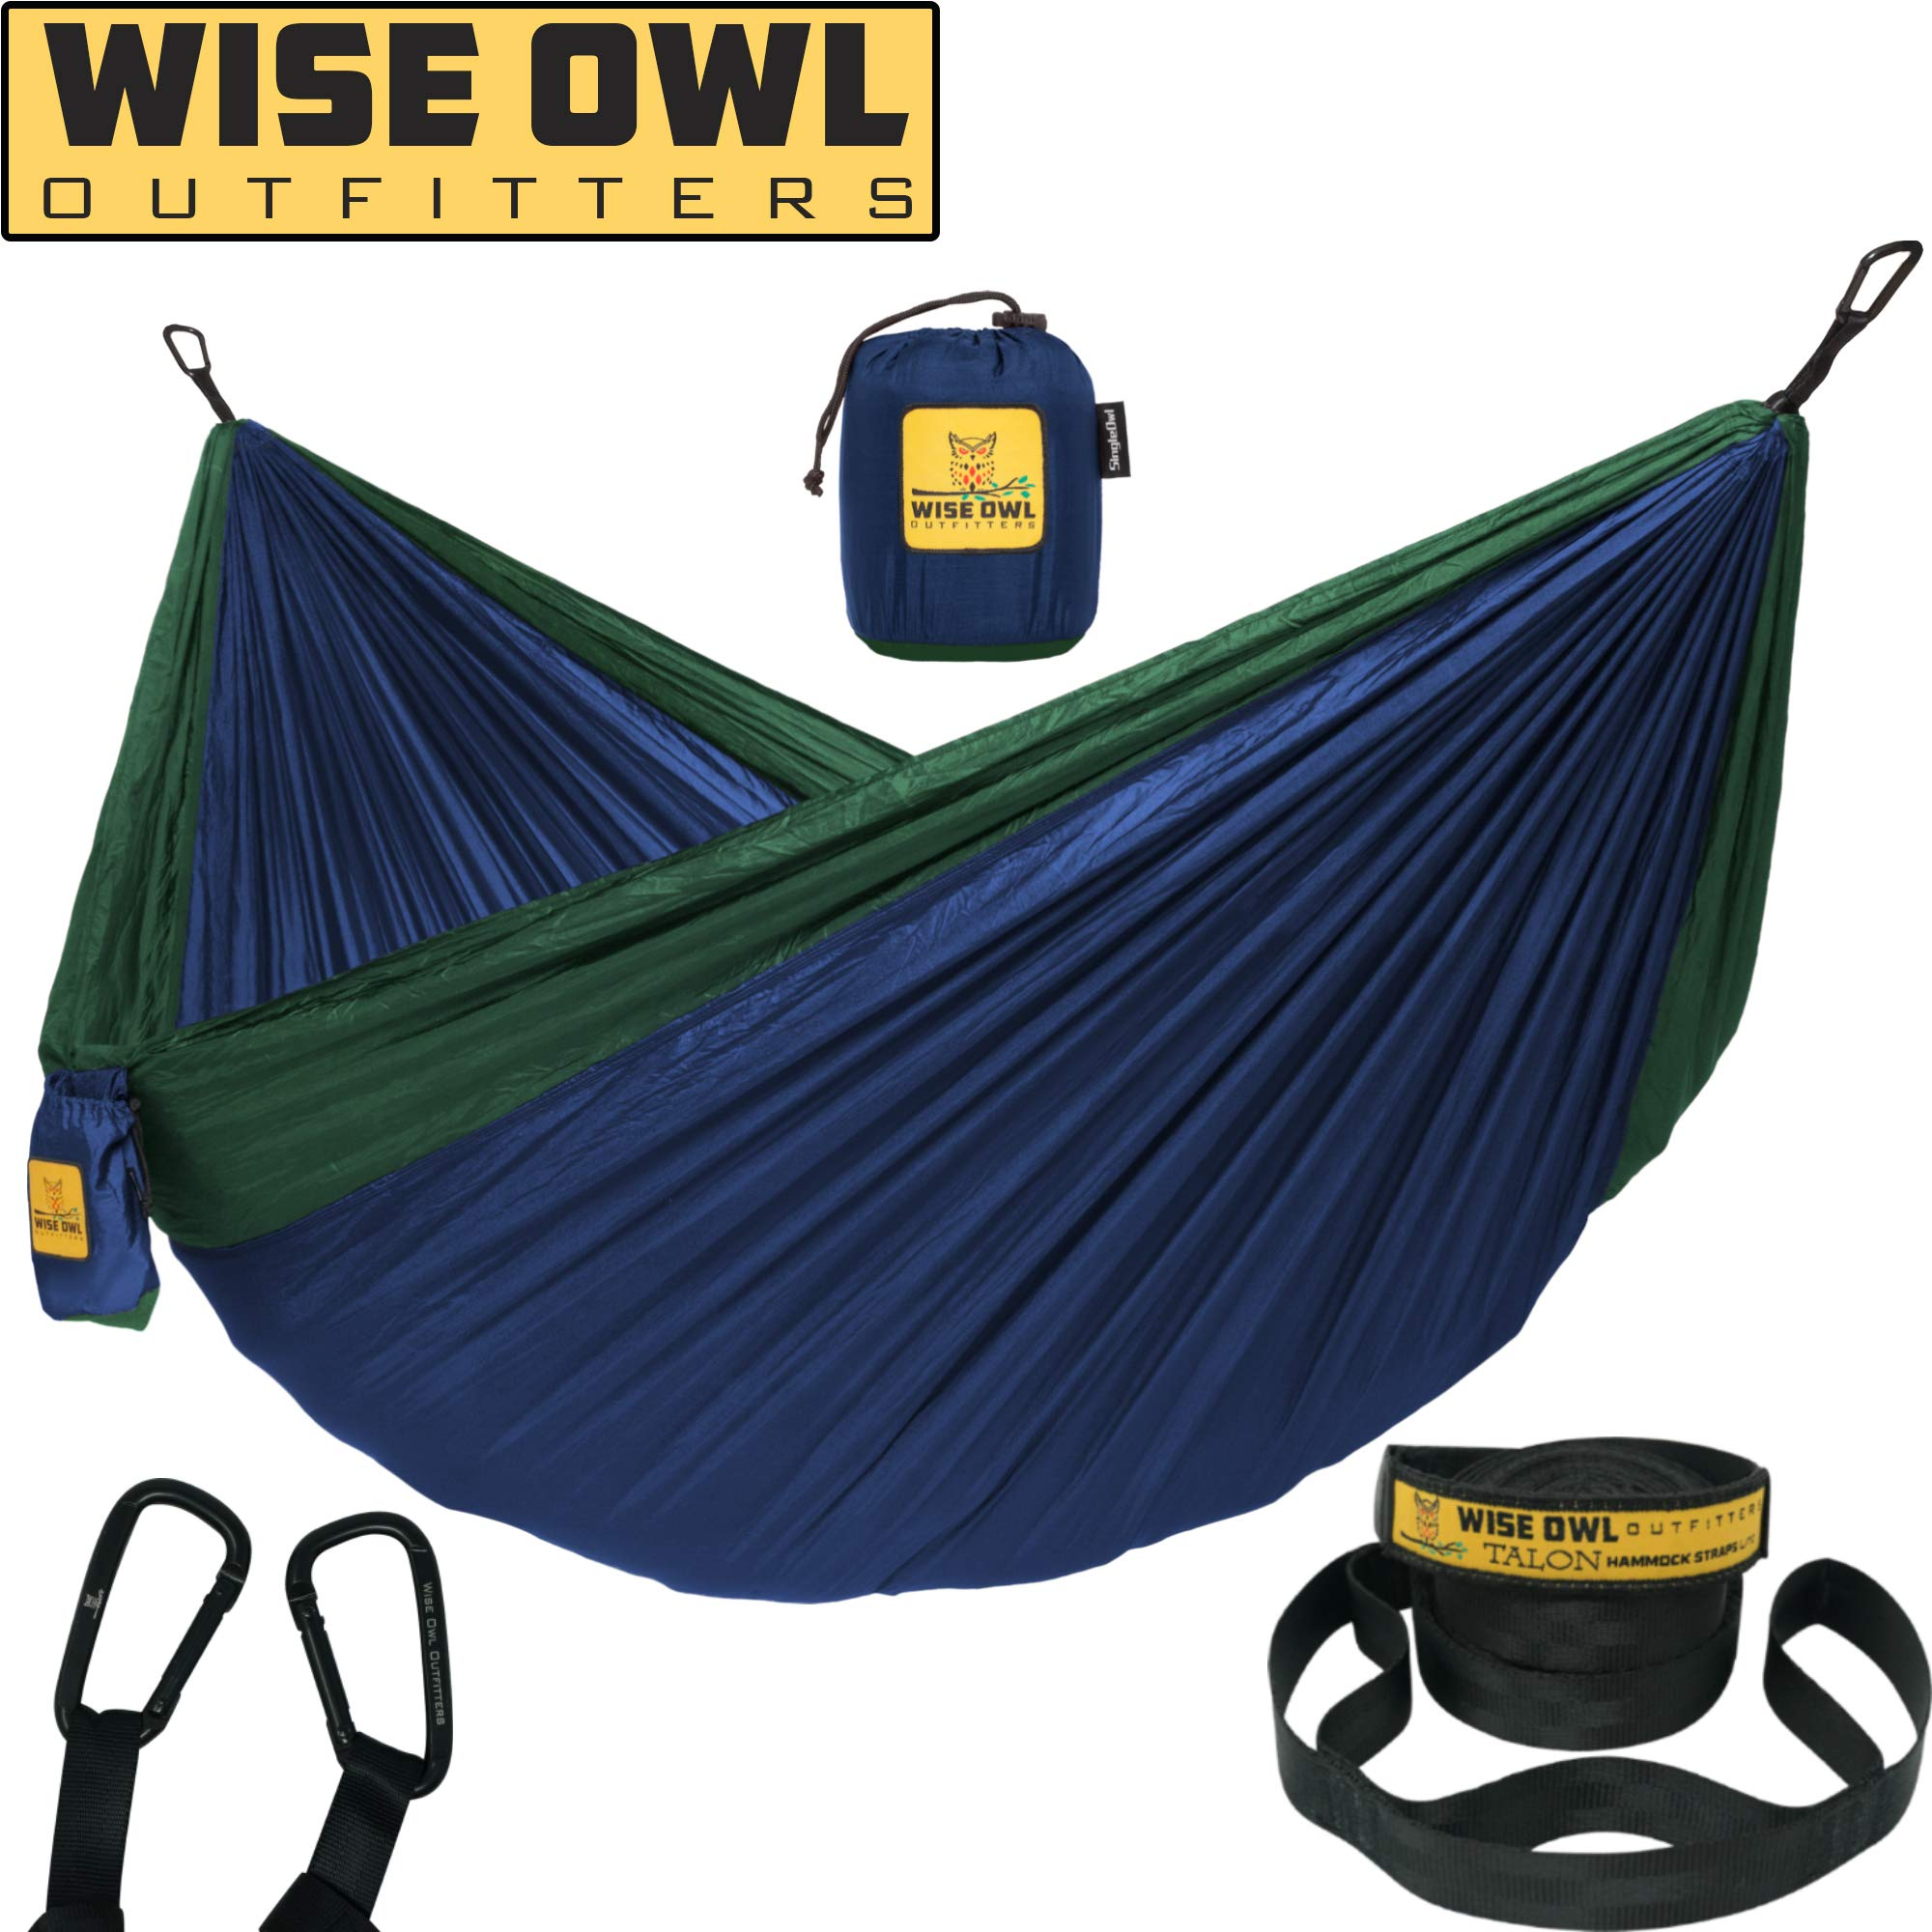 Wise Owl Outfitters Hammock Camping Double & Single with Tree Straps - USA Based Hammocks Brand Gear, Indoor Outdoor Backpacking Survival & Travel, Portable SO NvyFor